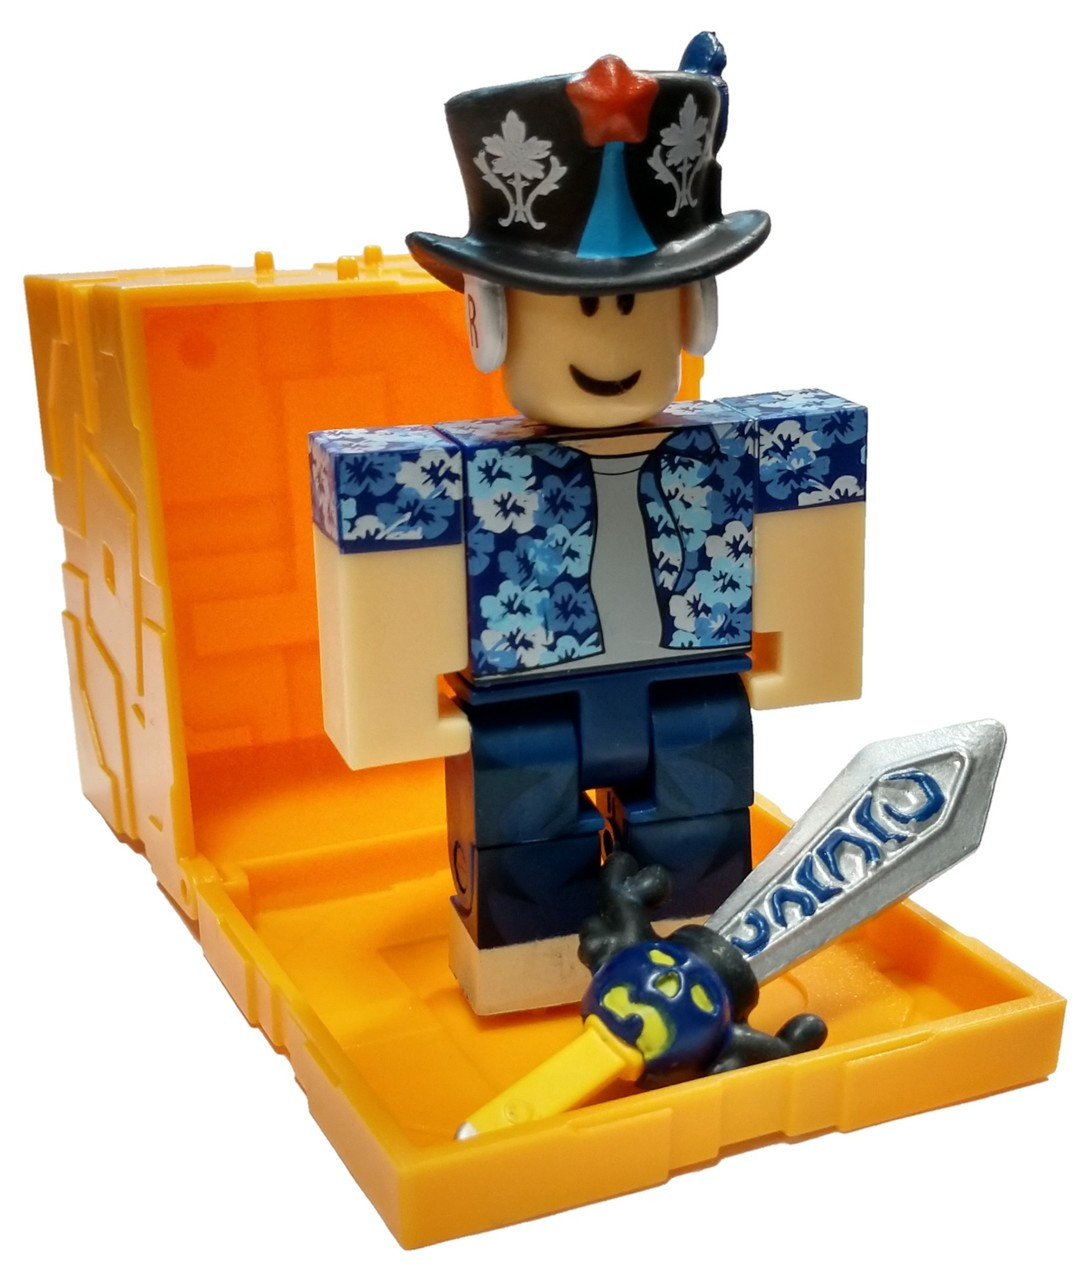 Henrydev Roblox Profile Roblox Series 5 Henrydev 3 Mini Figure With Gold Cube And Online Code Loose Jazwares Toywiz